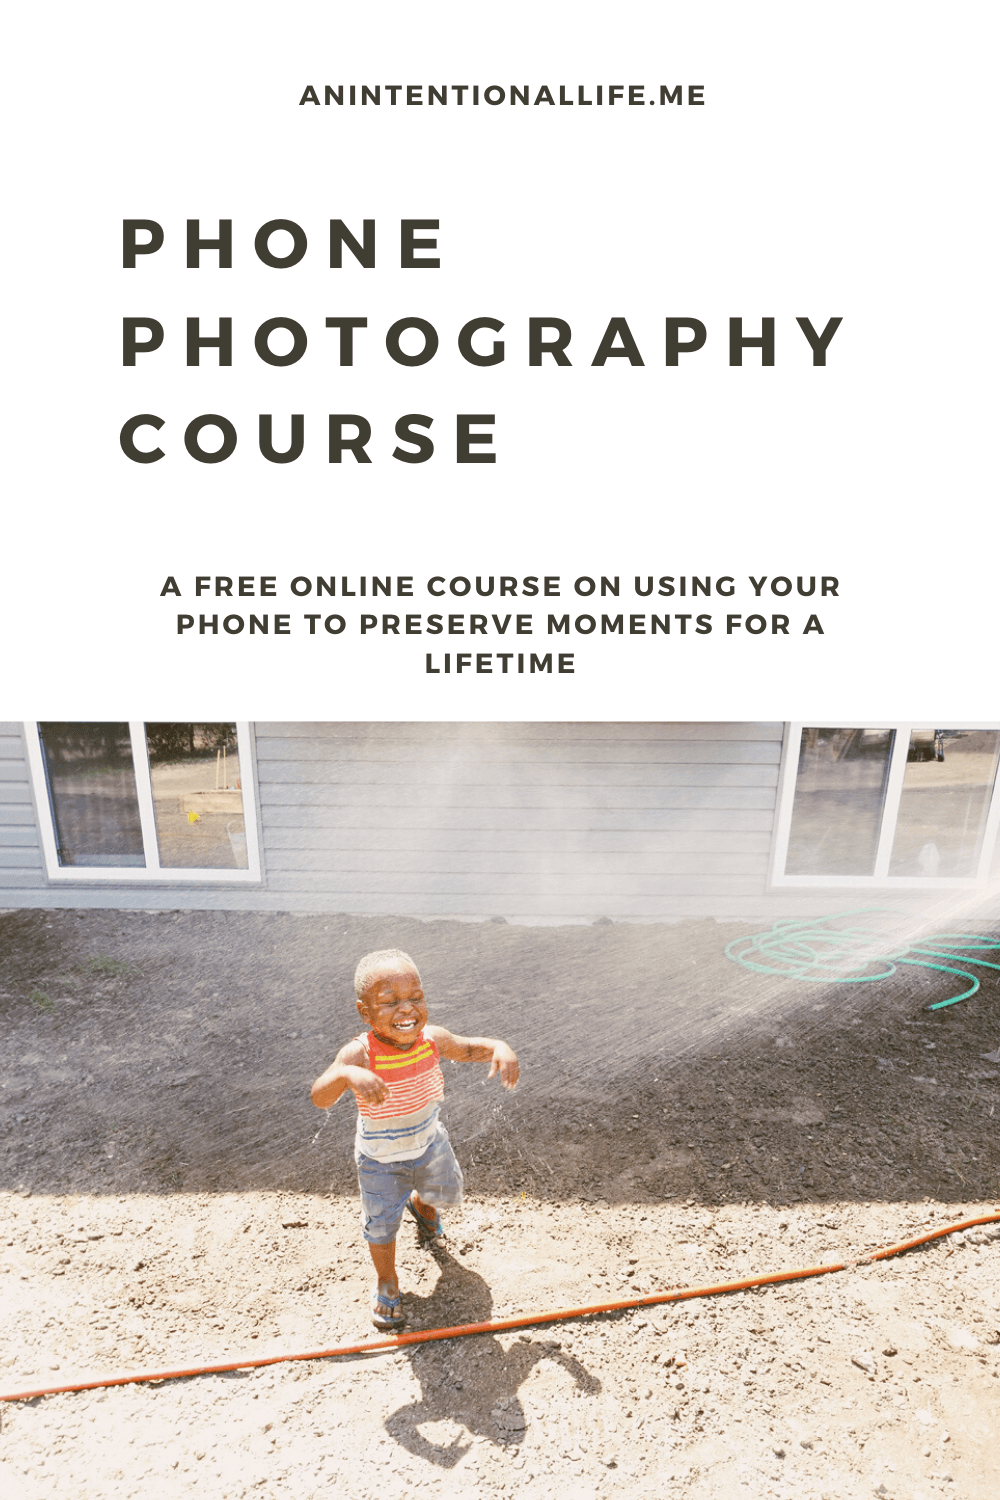 Phone Photography - a free online course online course on how to use your phone to preserve memories for a lifetime